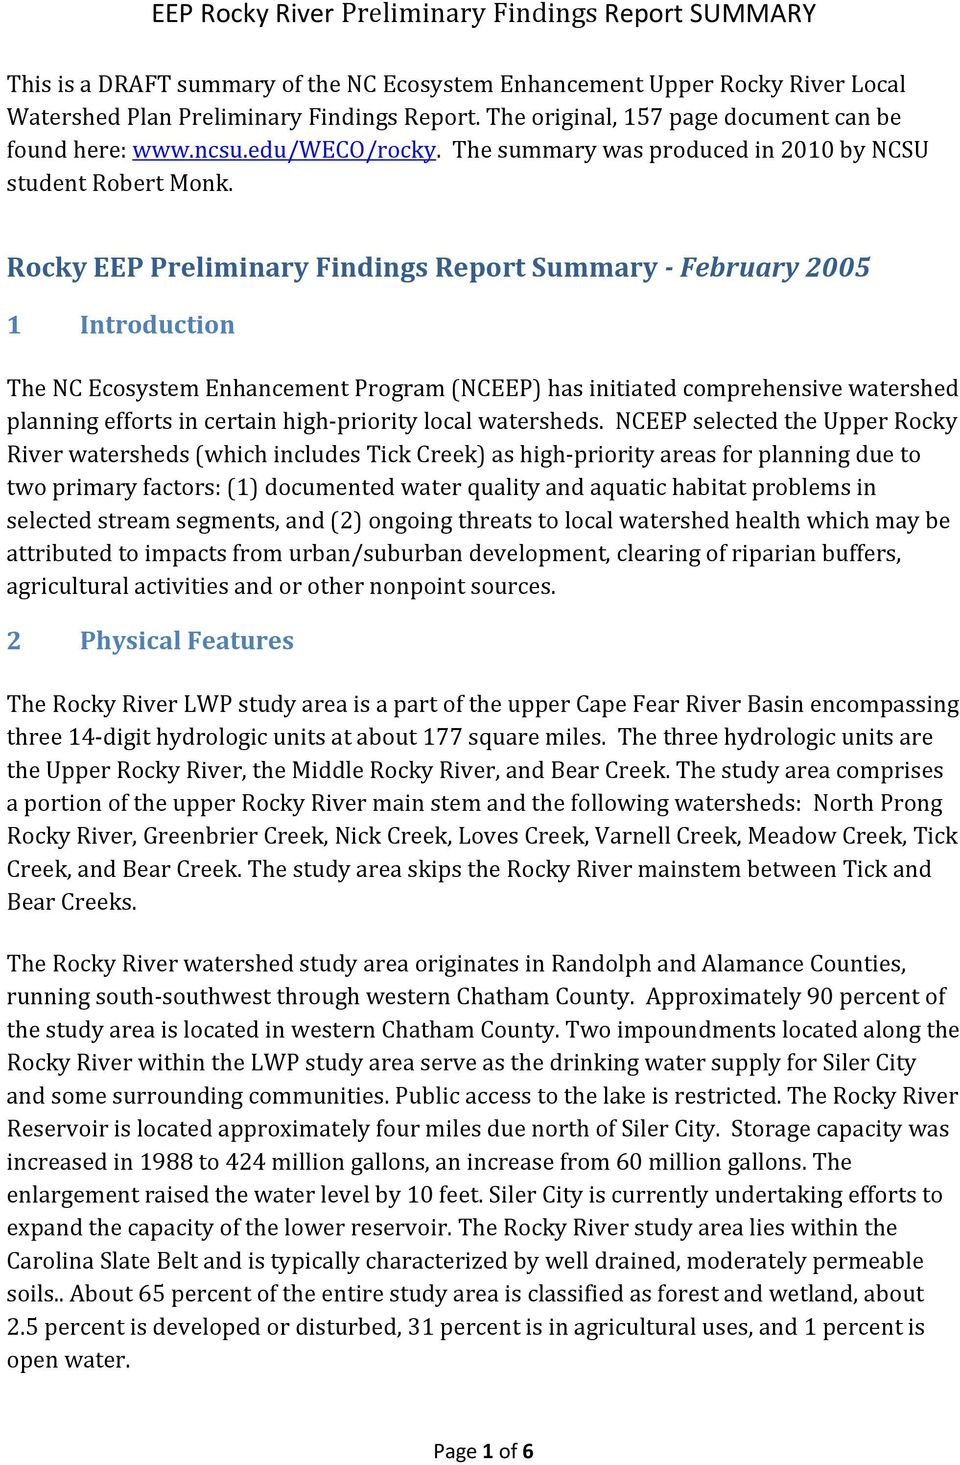 Rocky EEP Preliminary Findings Report Summary February 2005 1 Introduction The NC Ecosystem Enhancement Program (NCEEP) has initiated comprehensive watershed planning efforts in certain high priority